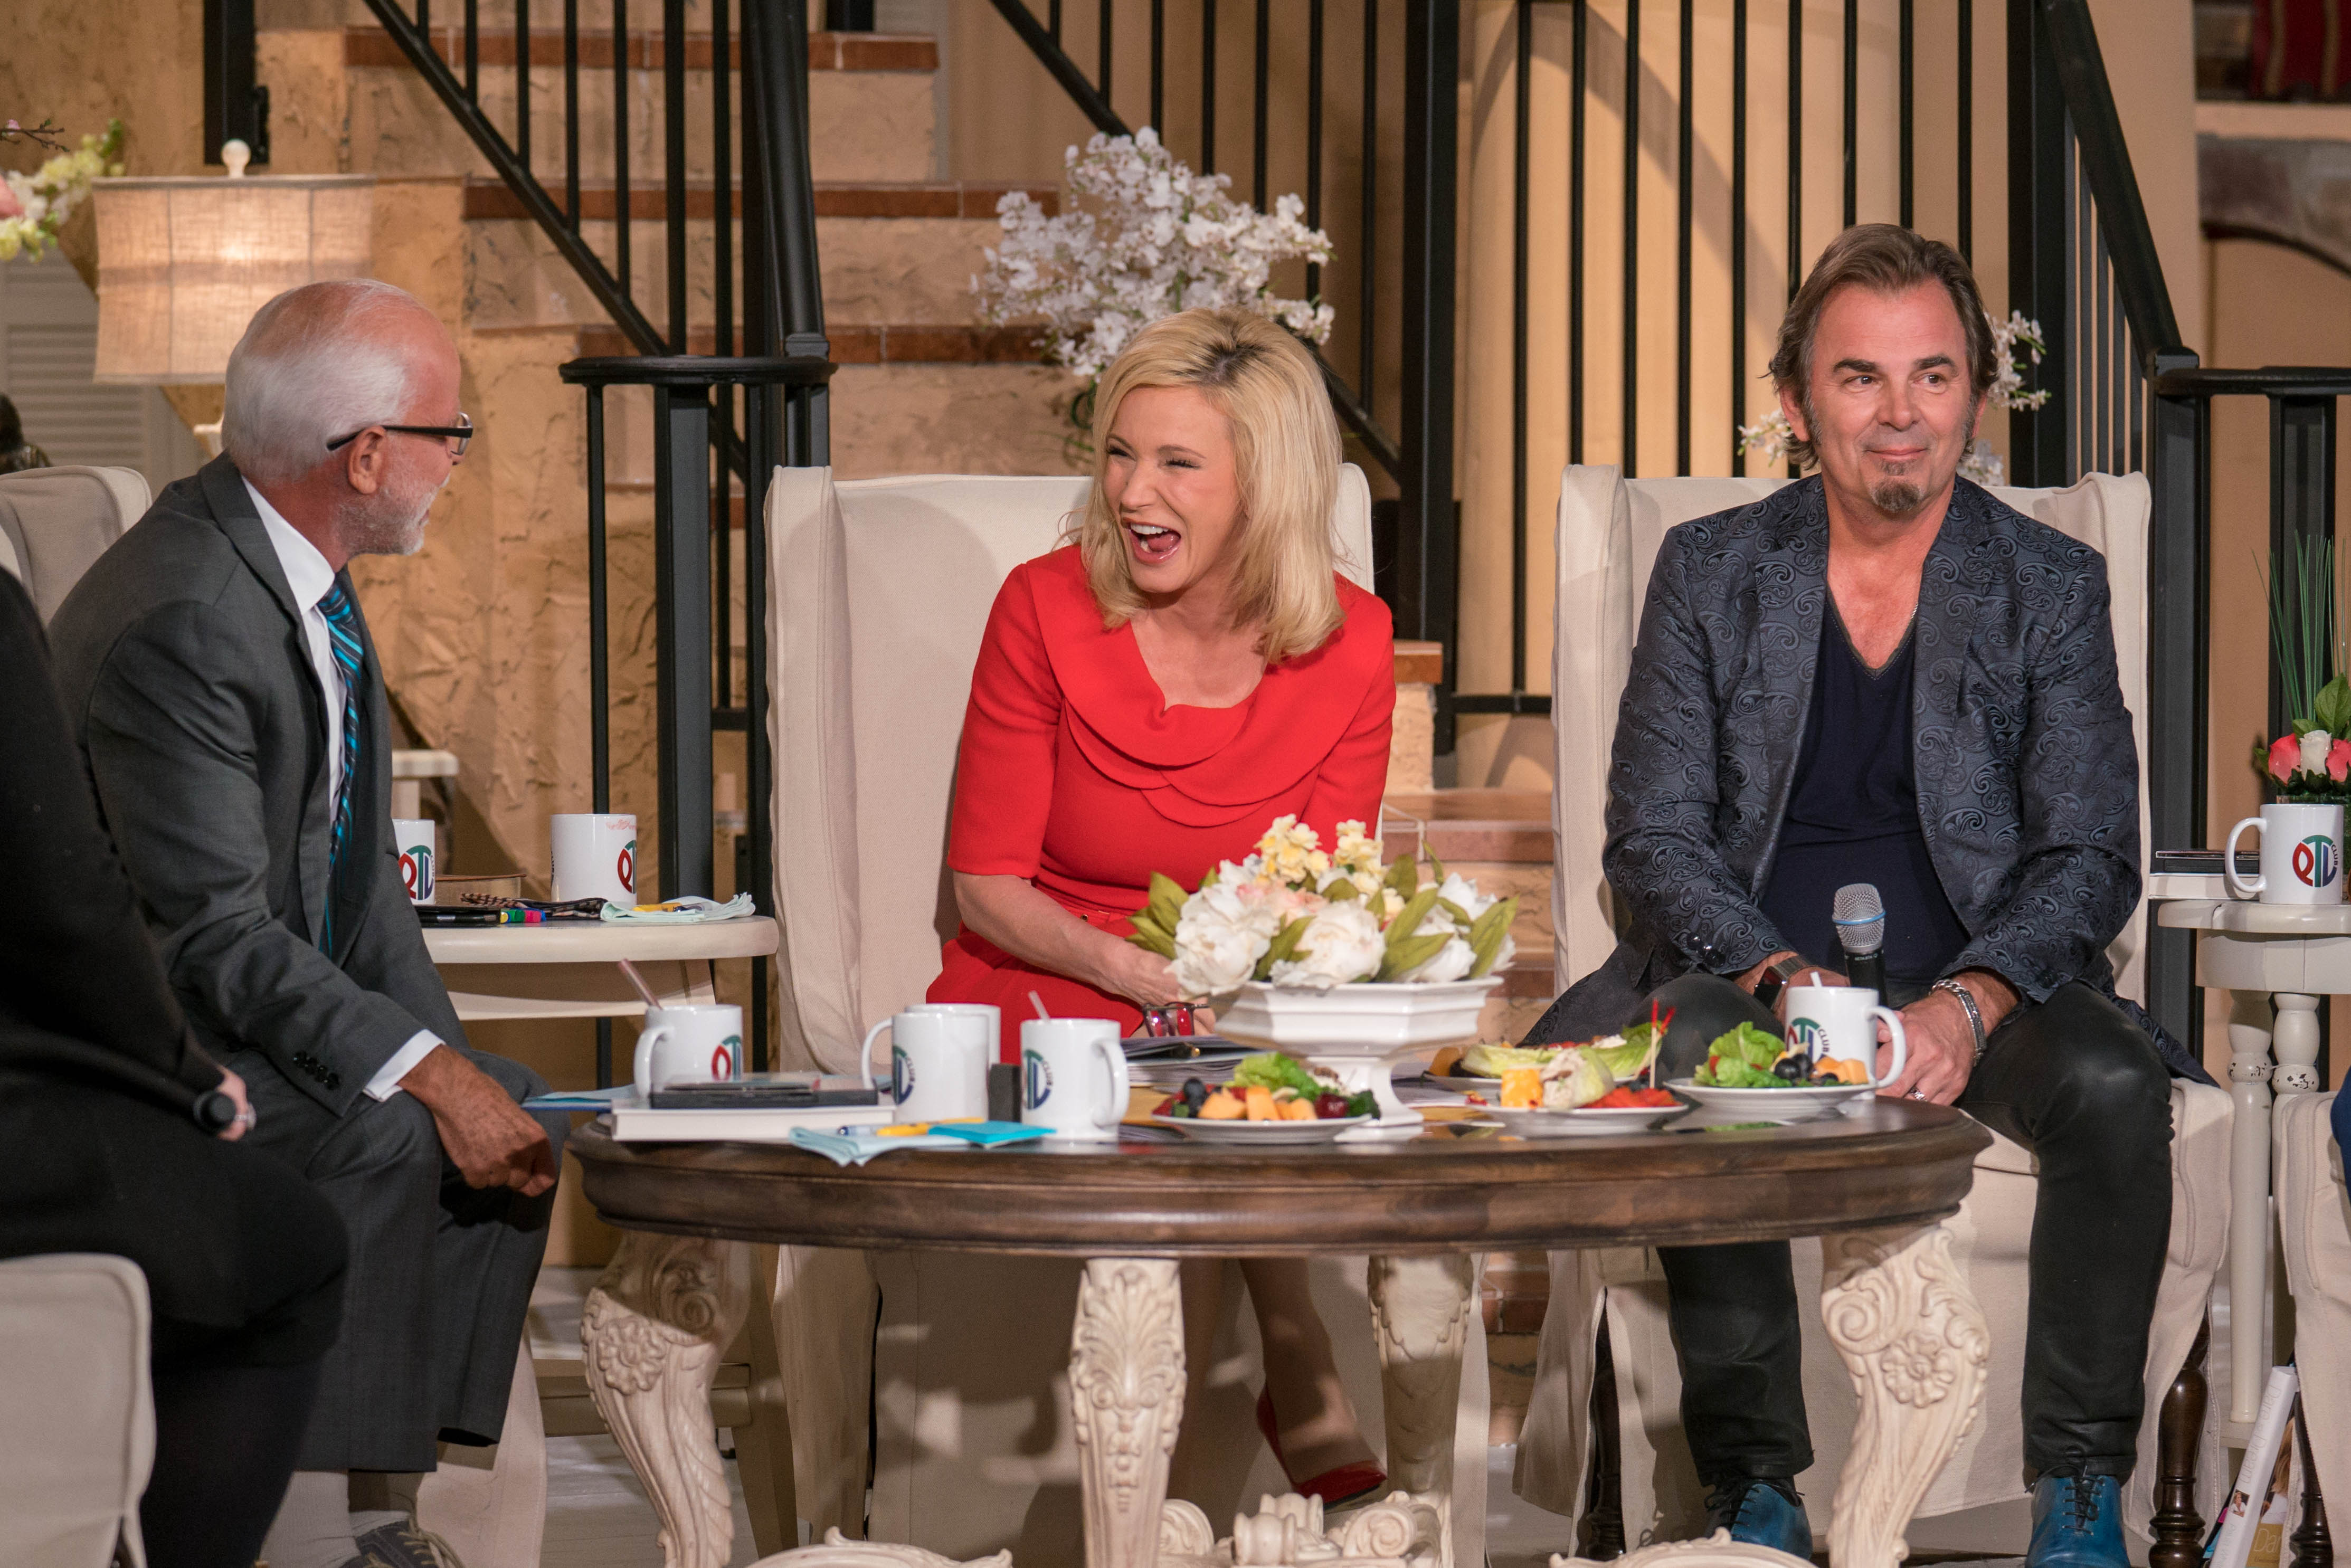 Paula White-Cain and Jonathan Cain on the Jim Bakker Show